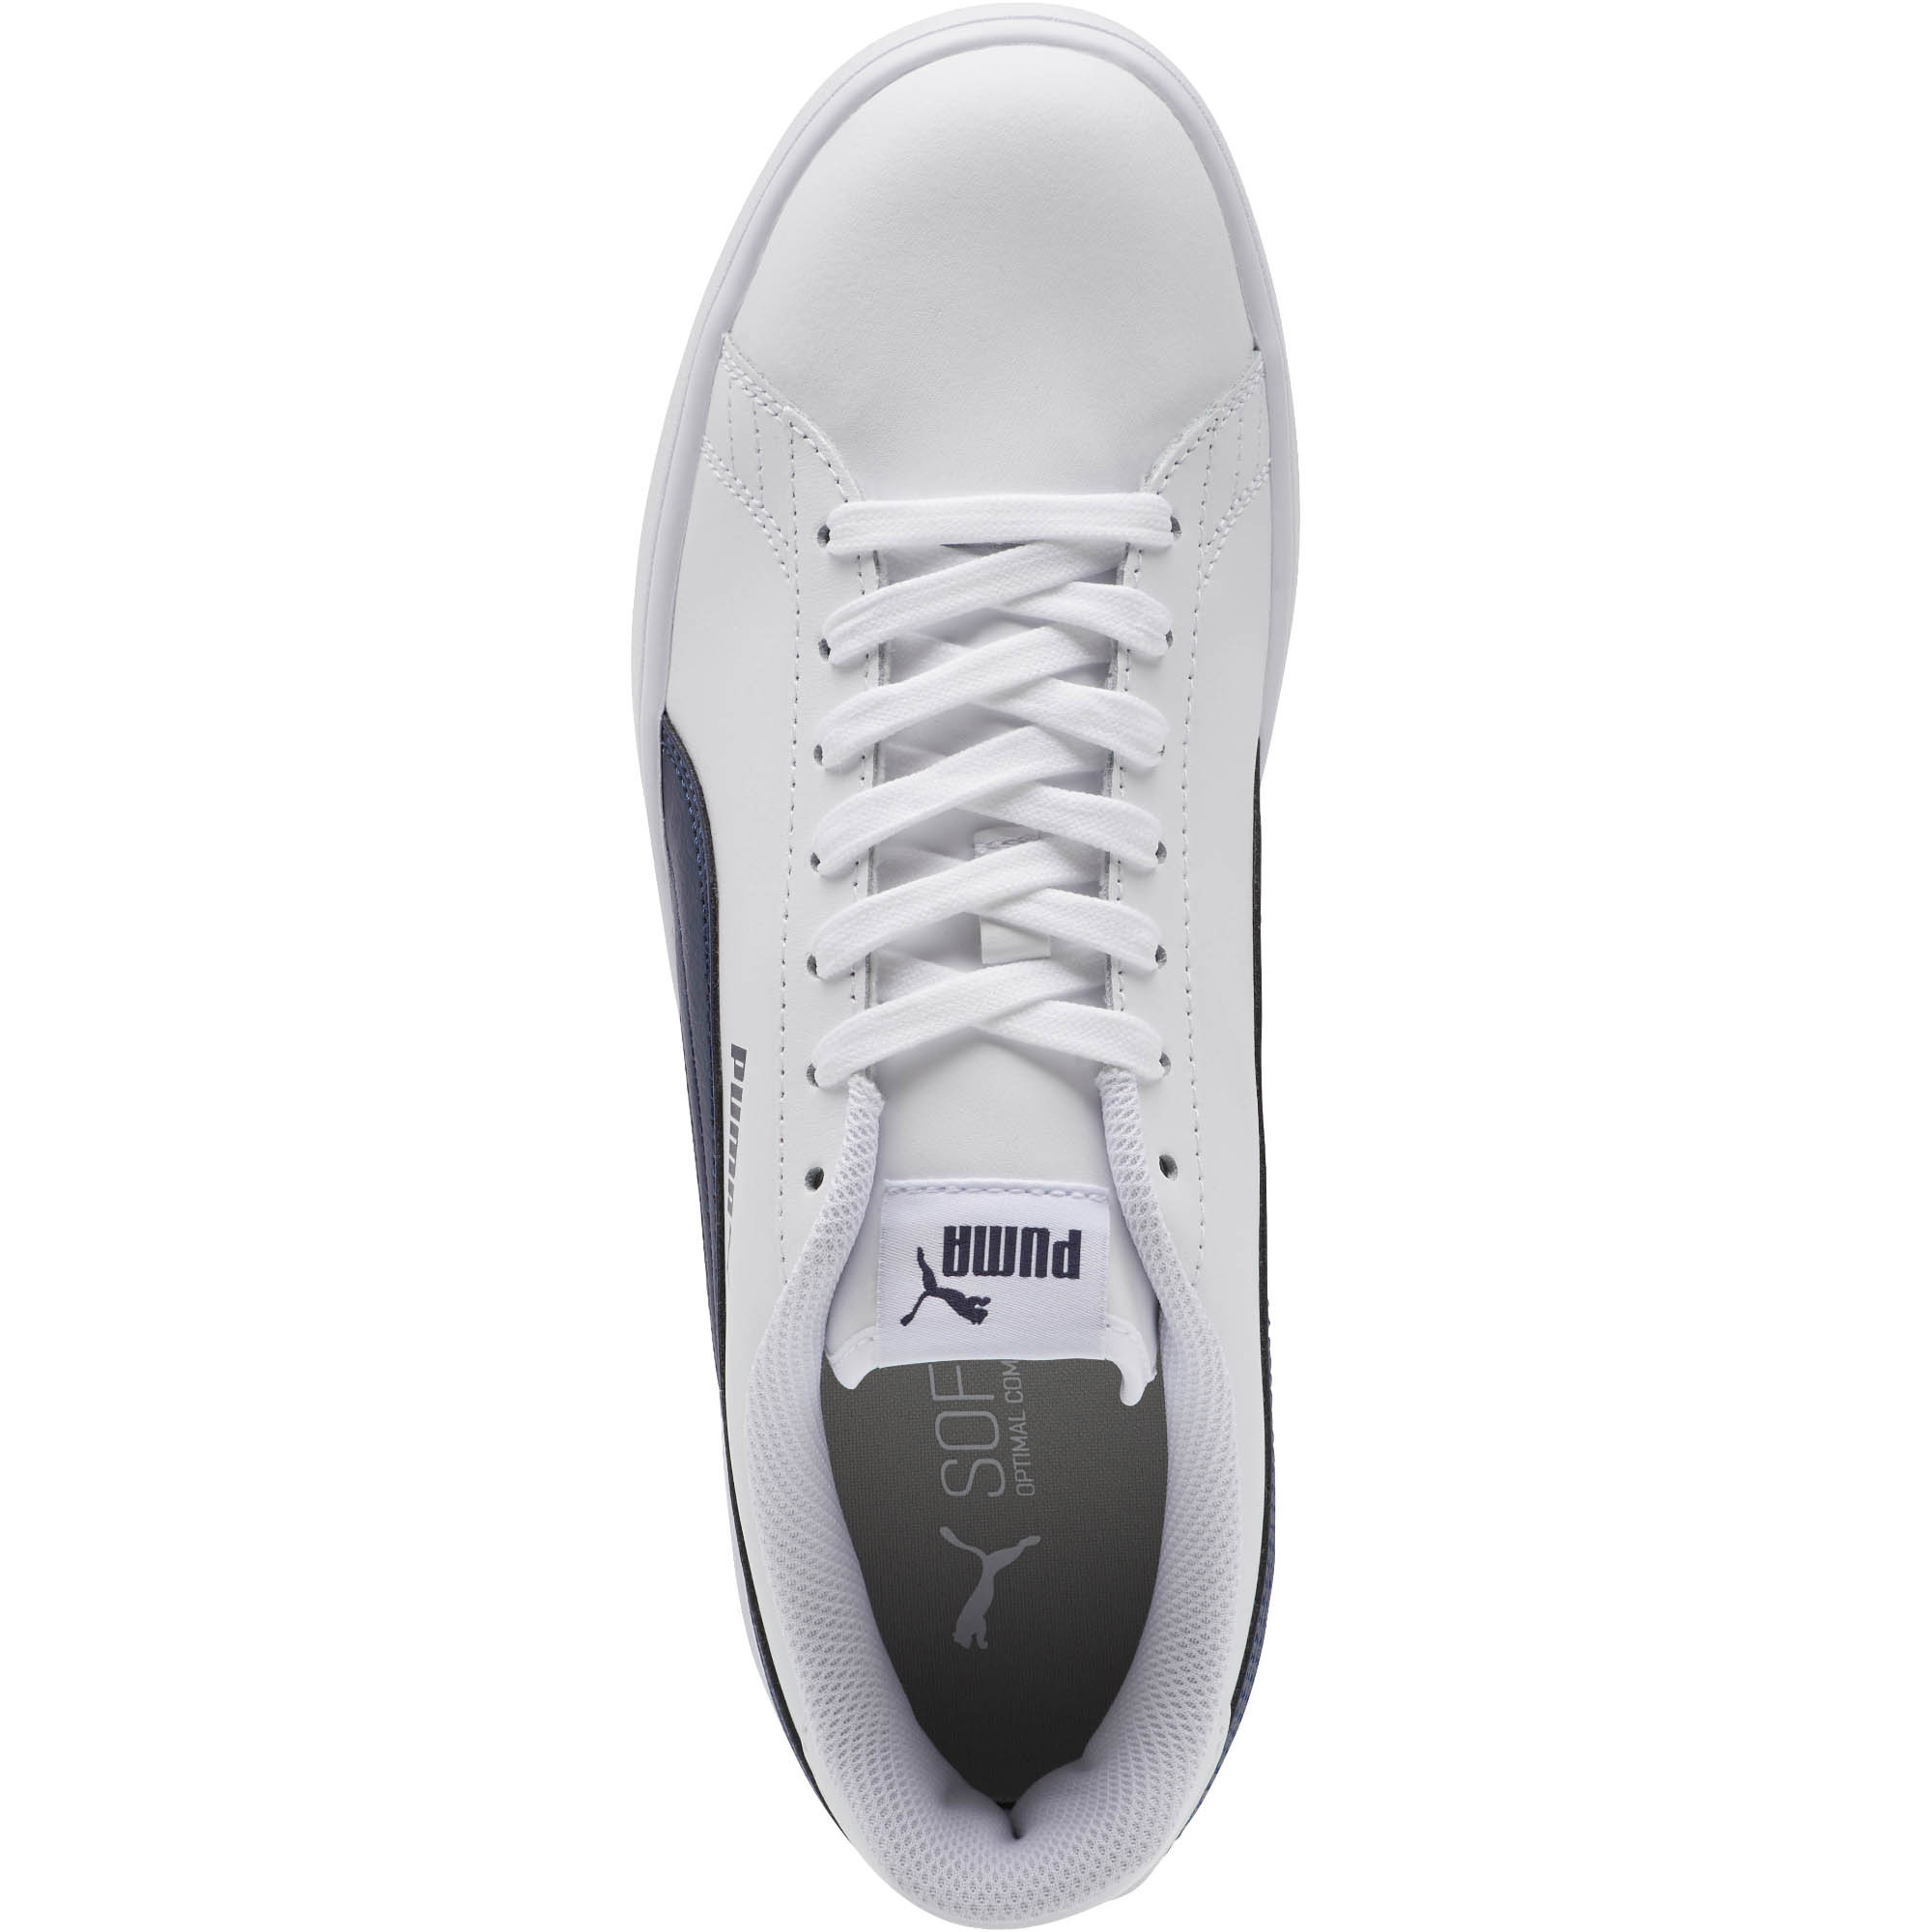 PUMA-PUMA-Smash-v2-Men-039-s-Sneakers-Men-Shoe-Basics miniatura 16